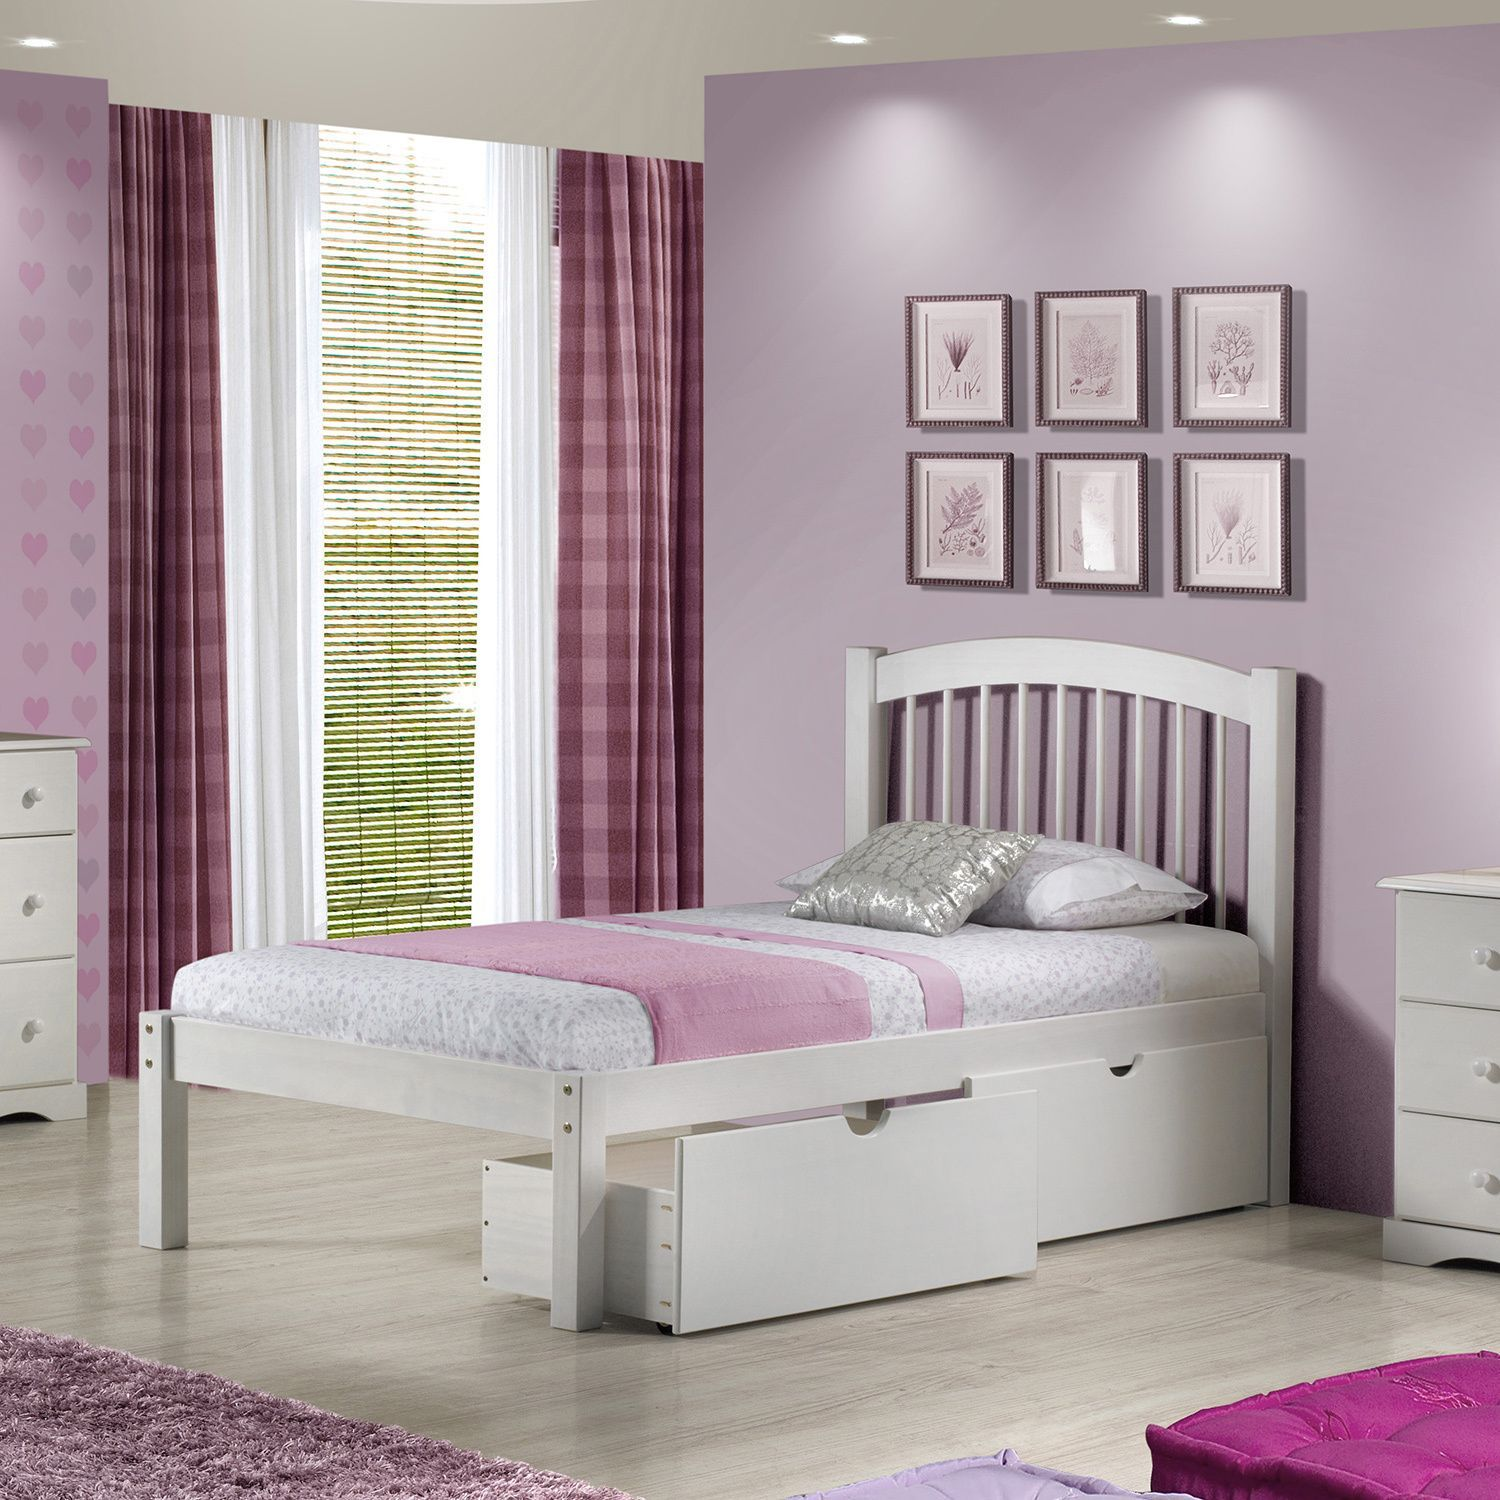 Twin loft bed craigslist  This attractive twin spindle bed is made of percent solid wood